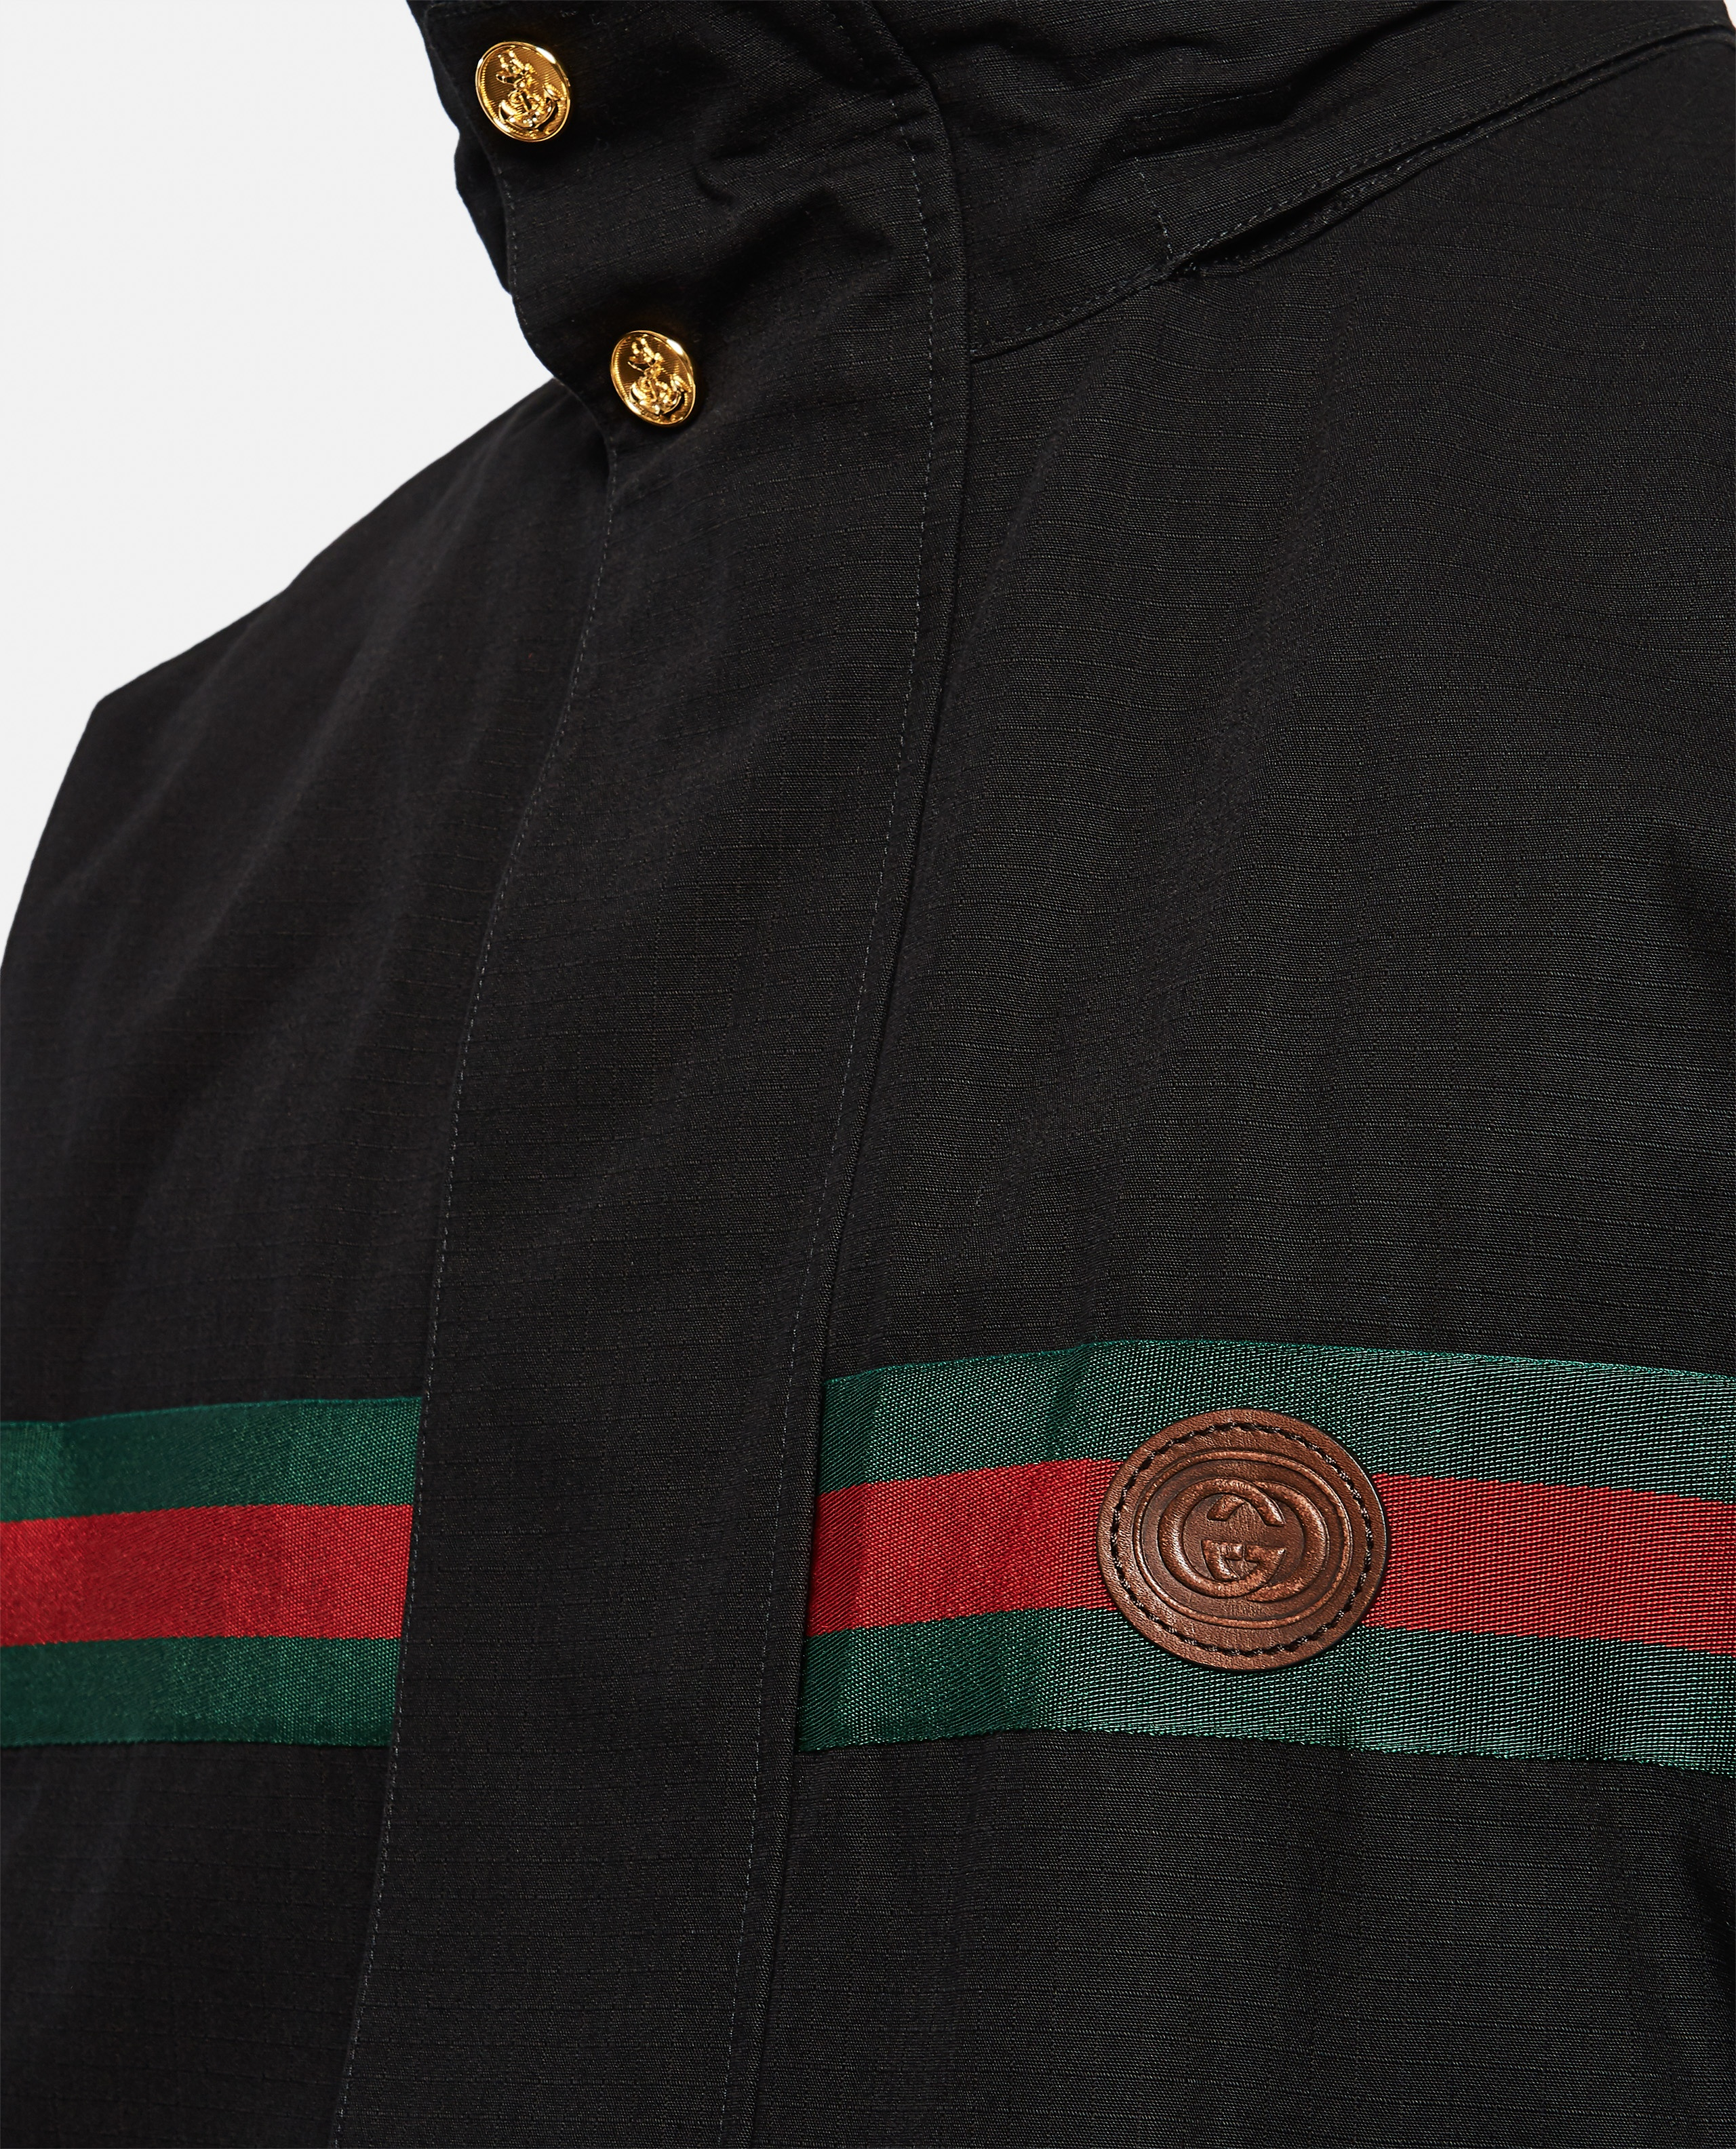 Reversible nylon and cotton jacket Men Gucci 000293050043162 4